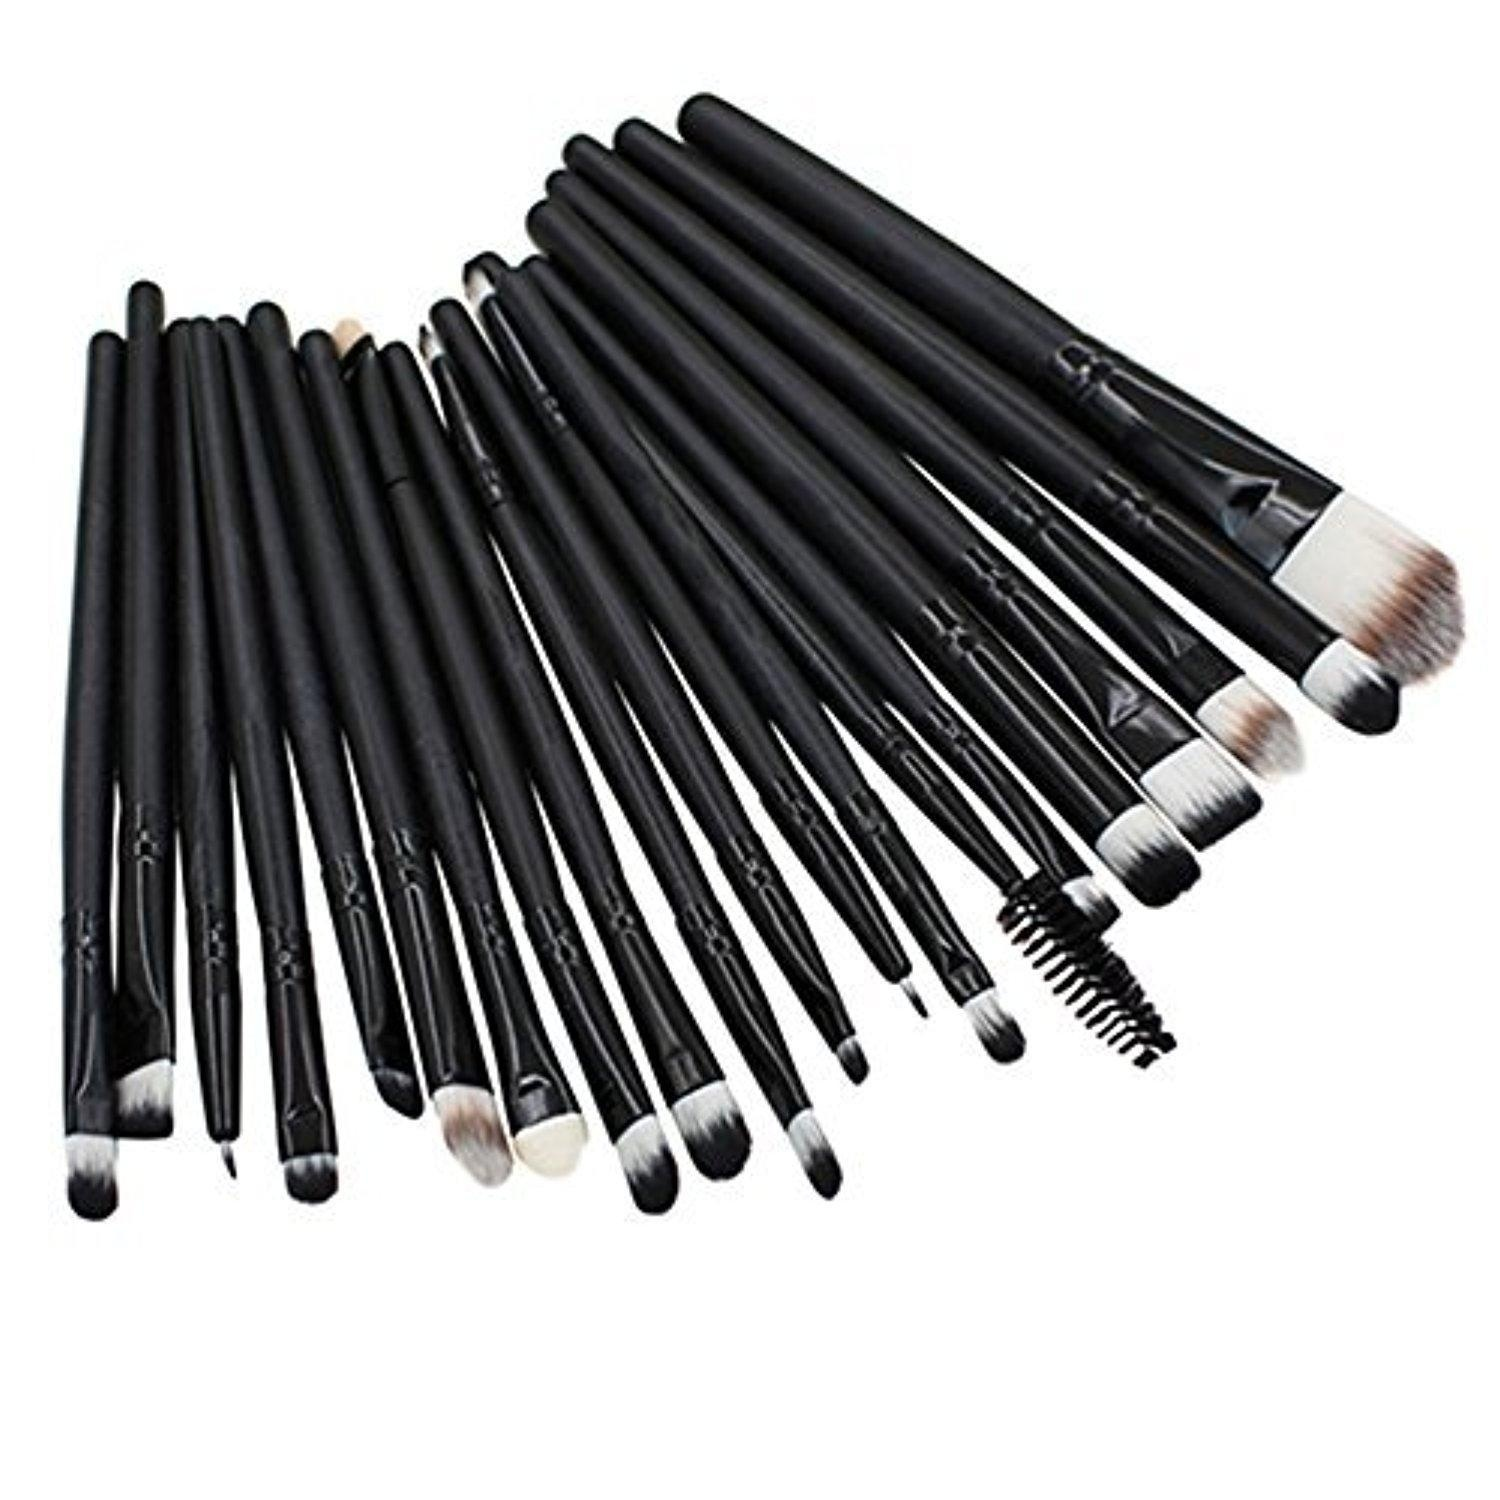 20pcs Pro Makeup Brushes Set Powder Foundation Eyeshadow Eyeliner Lip Brushes by Broadfashion